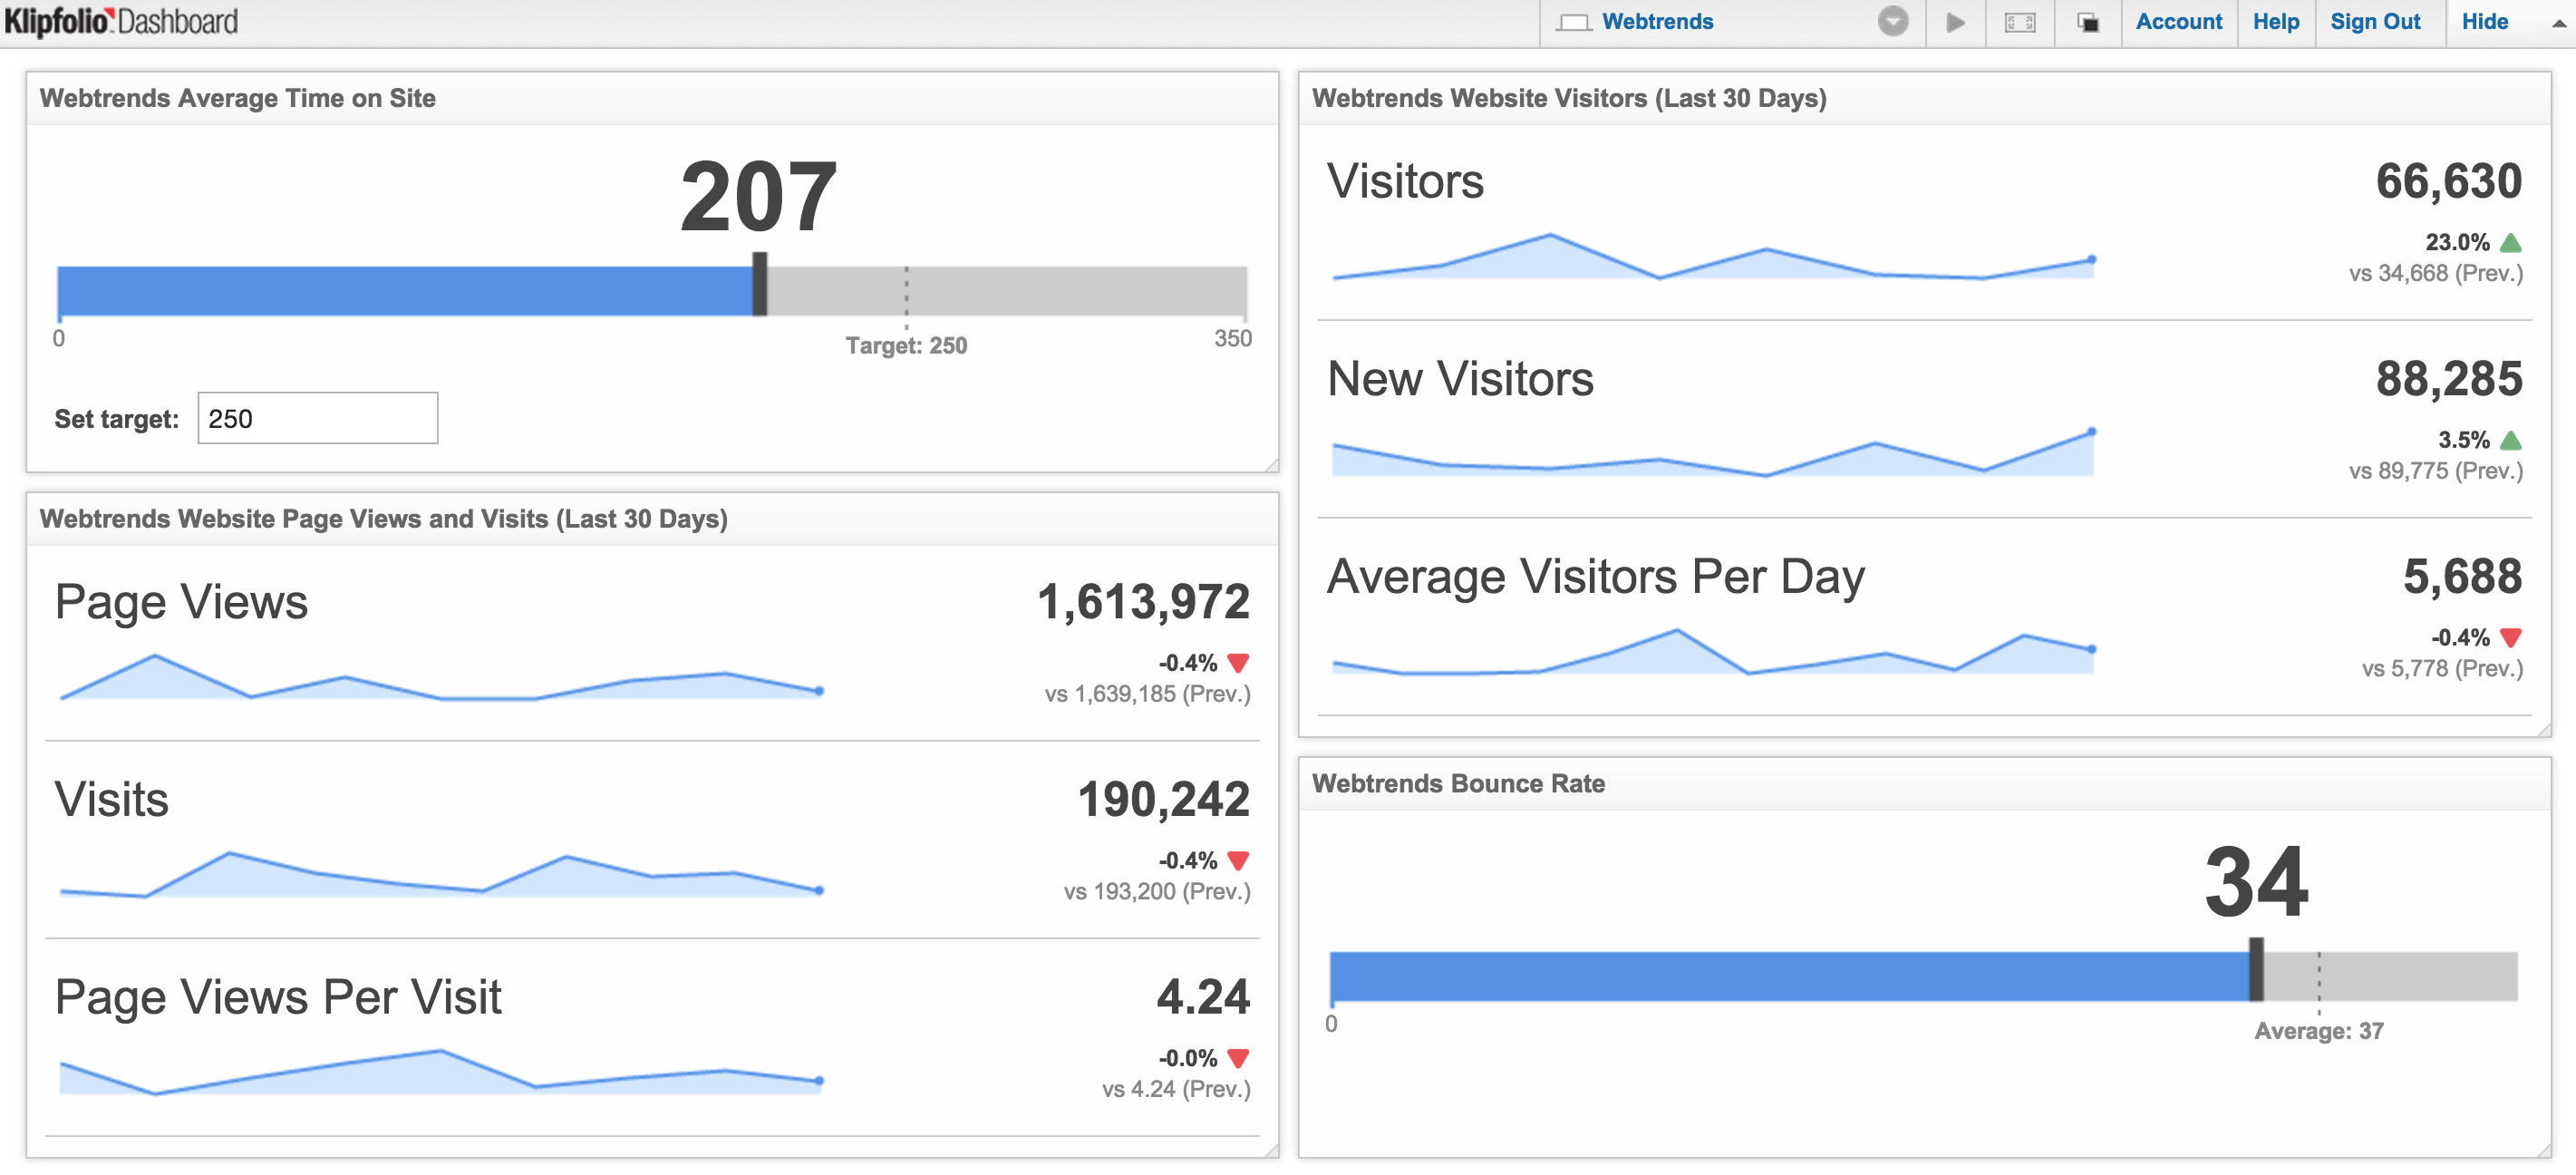 Webtrends metrics | Dashboard Example